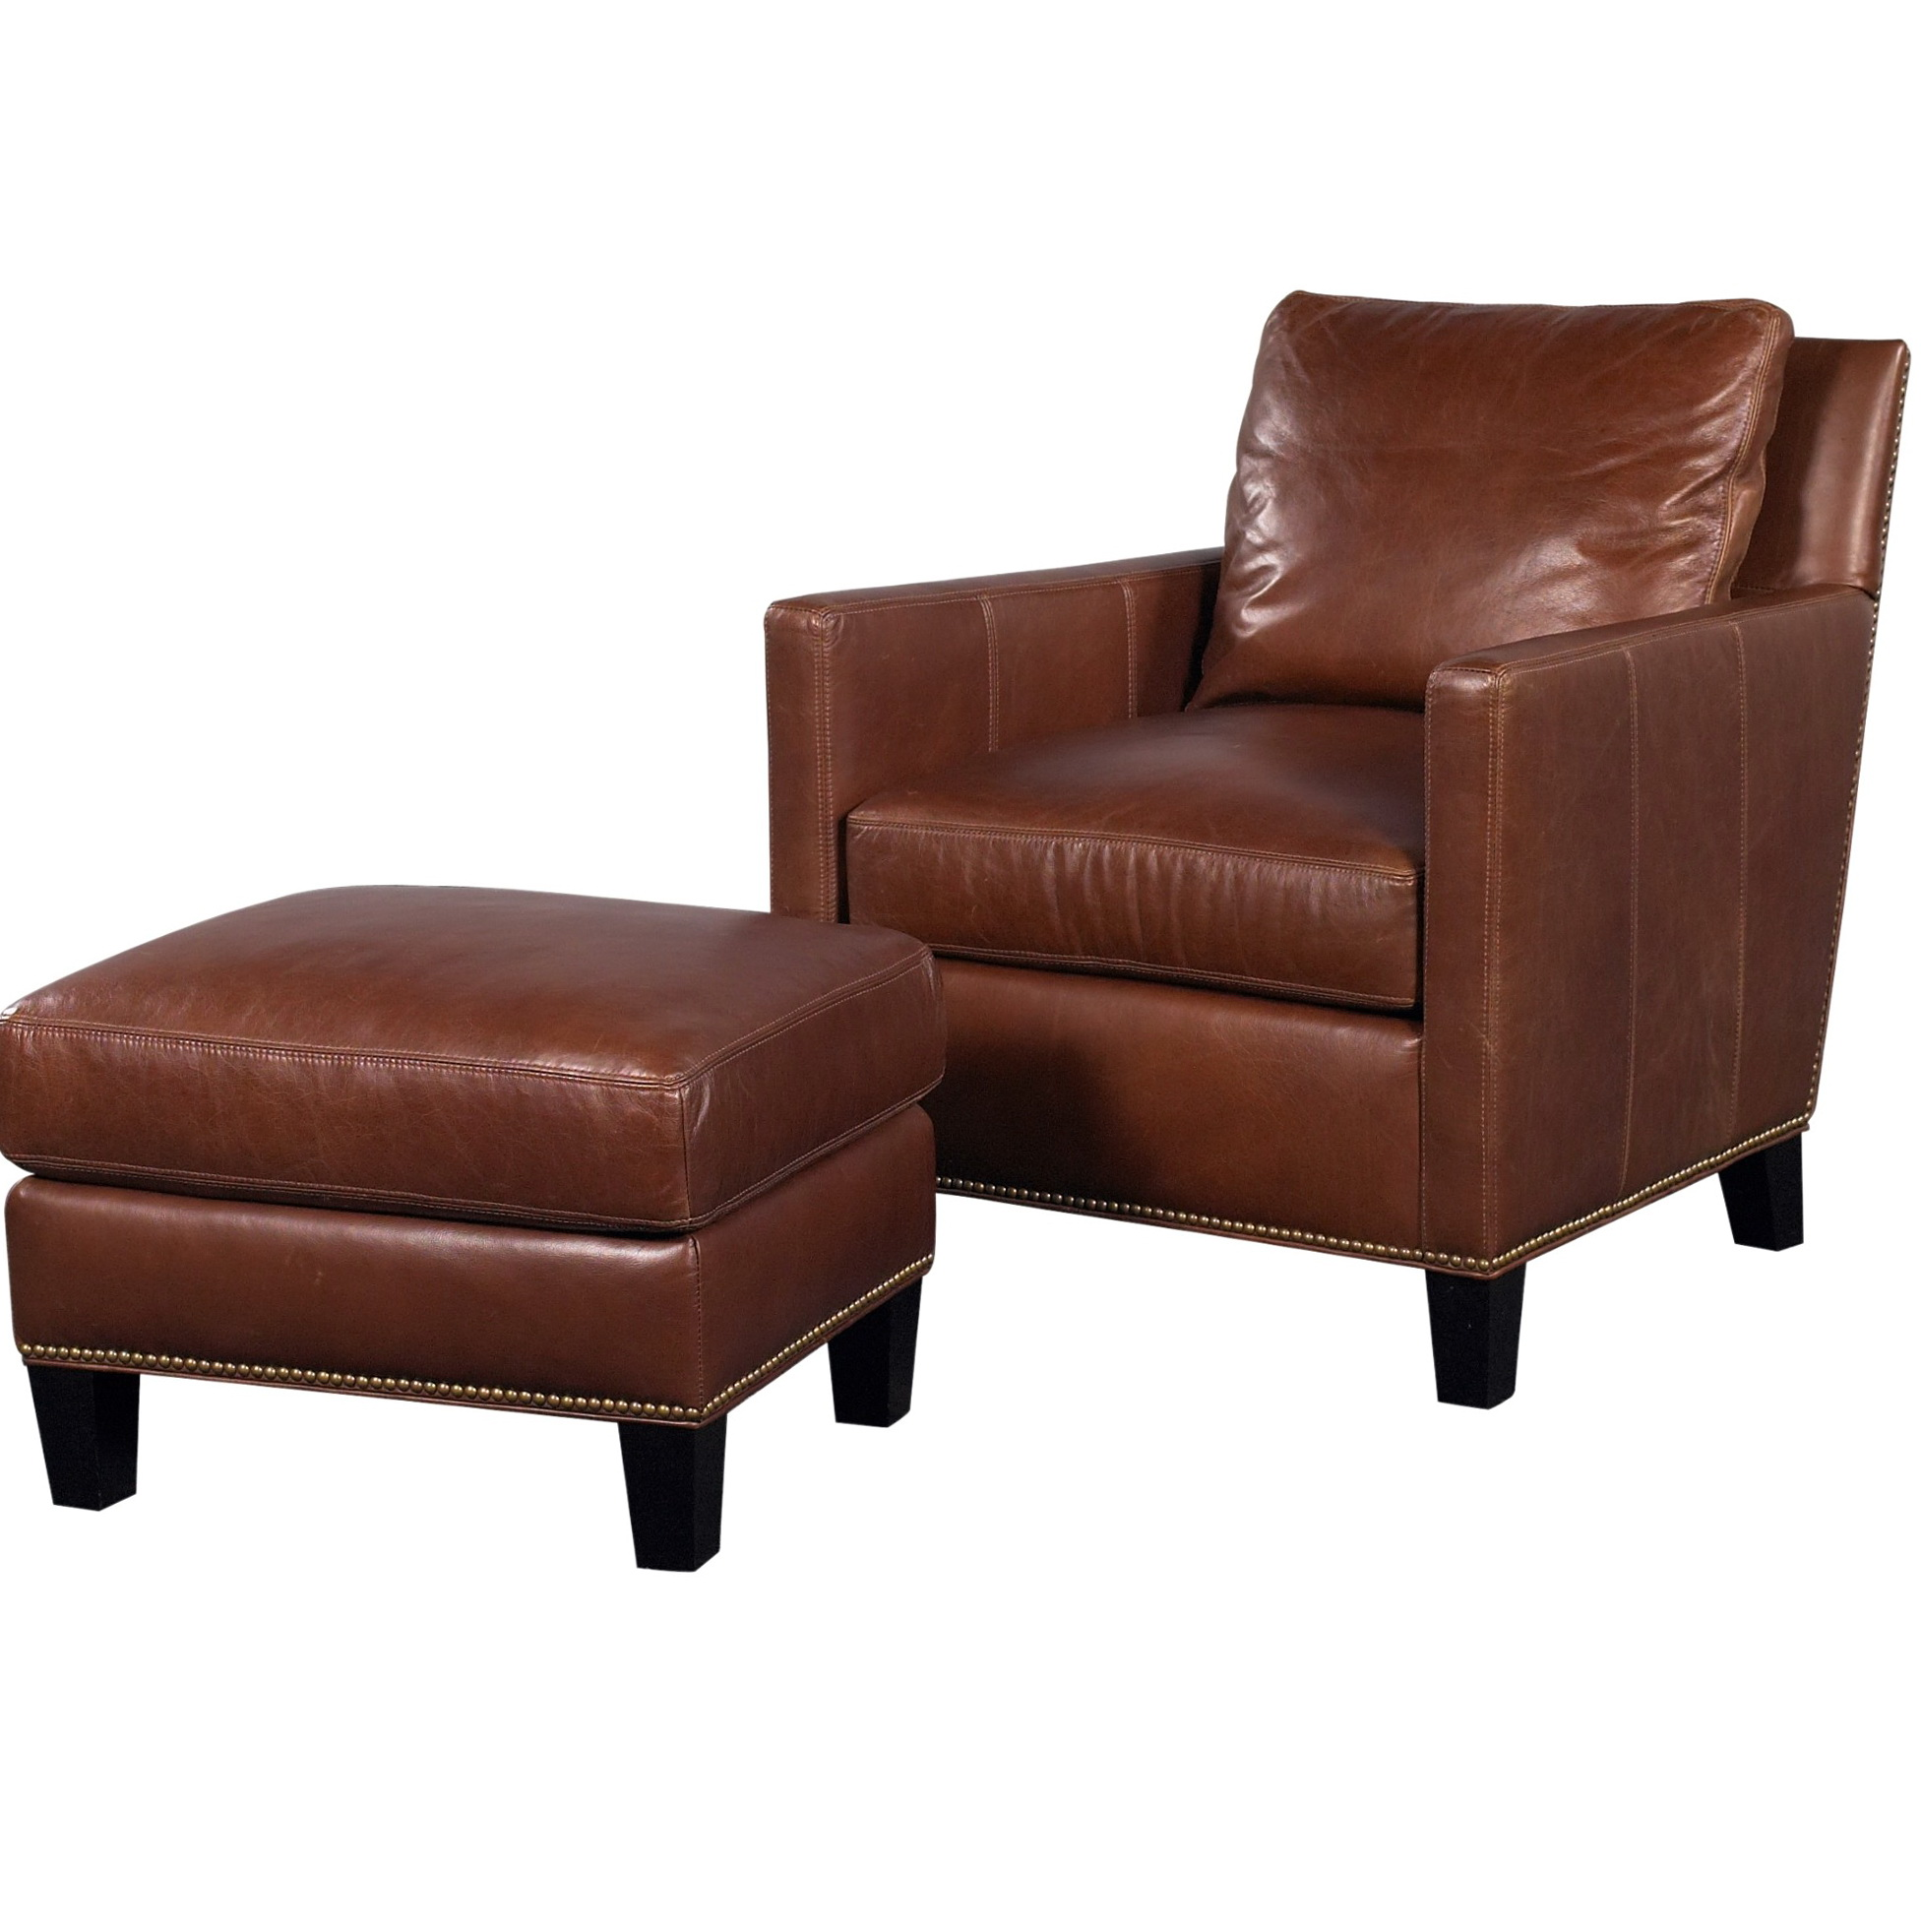 Ikea Leather Chair With Ottoman Home Design Ideas